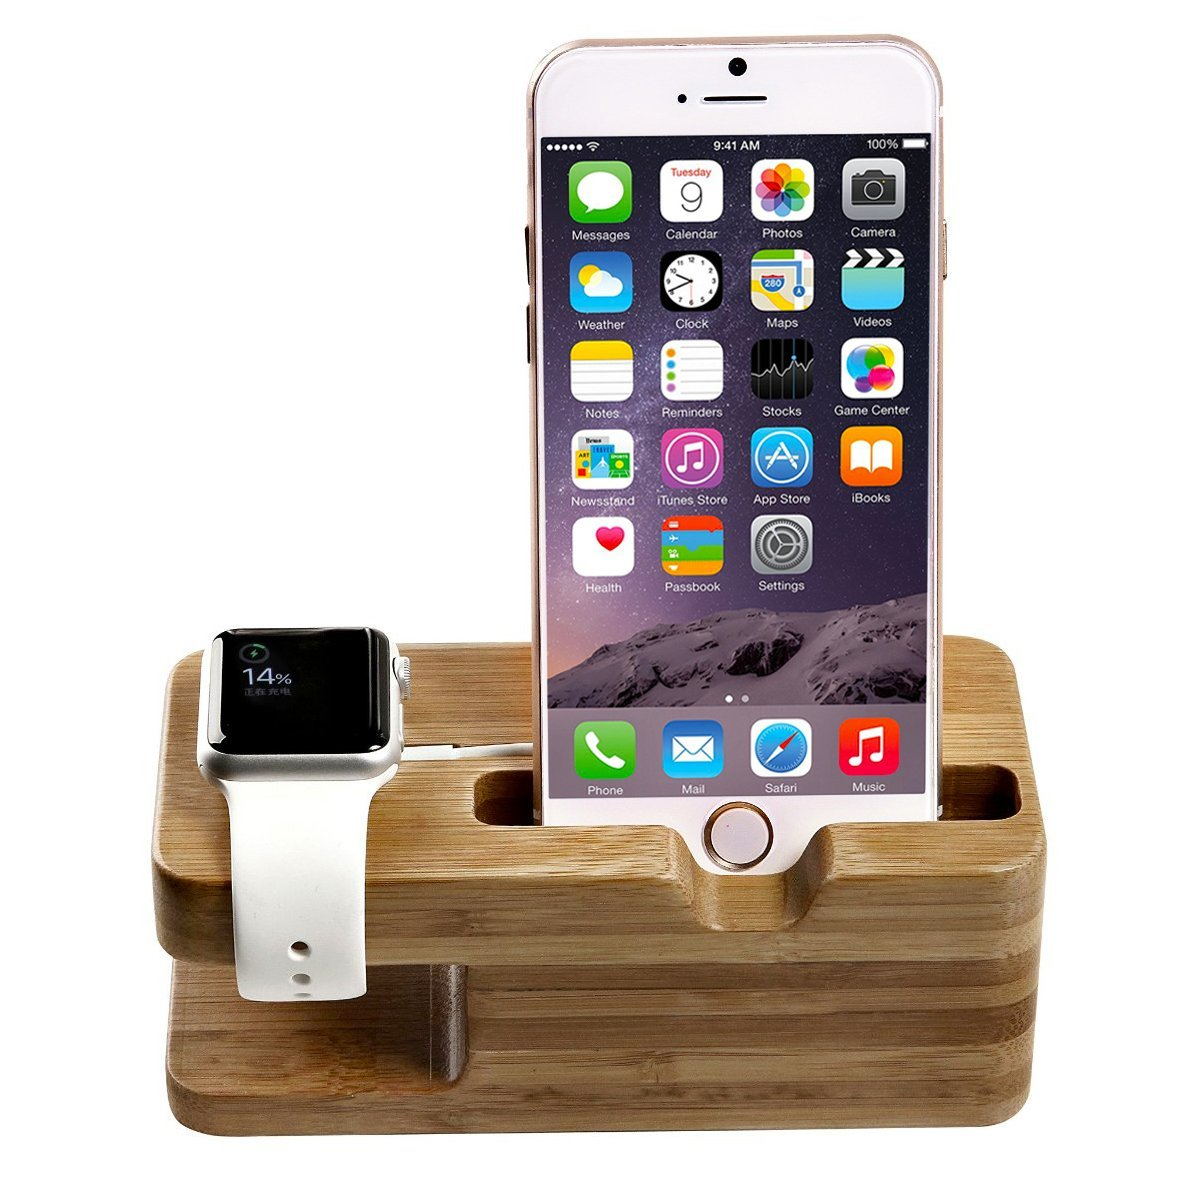 Apple Watch Stand, Pasonomi® Apple Watch Bamboo Wood Charging Stand Bracket Docking Station Stock Cradle Holder for Apple Watch & iPhone - Fits iPhone Models: 5 / 5S / 5C / 6 / 6 PLUS and both 42mm & 38mm sizes of 2015 Watch Models